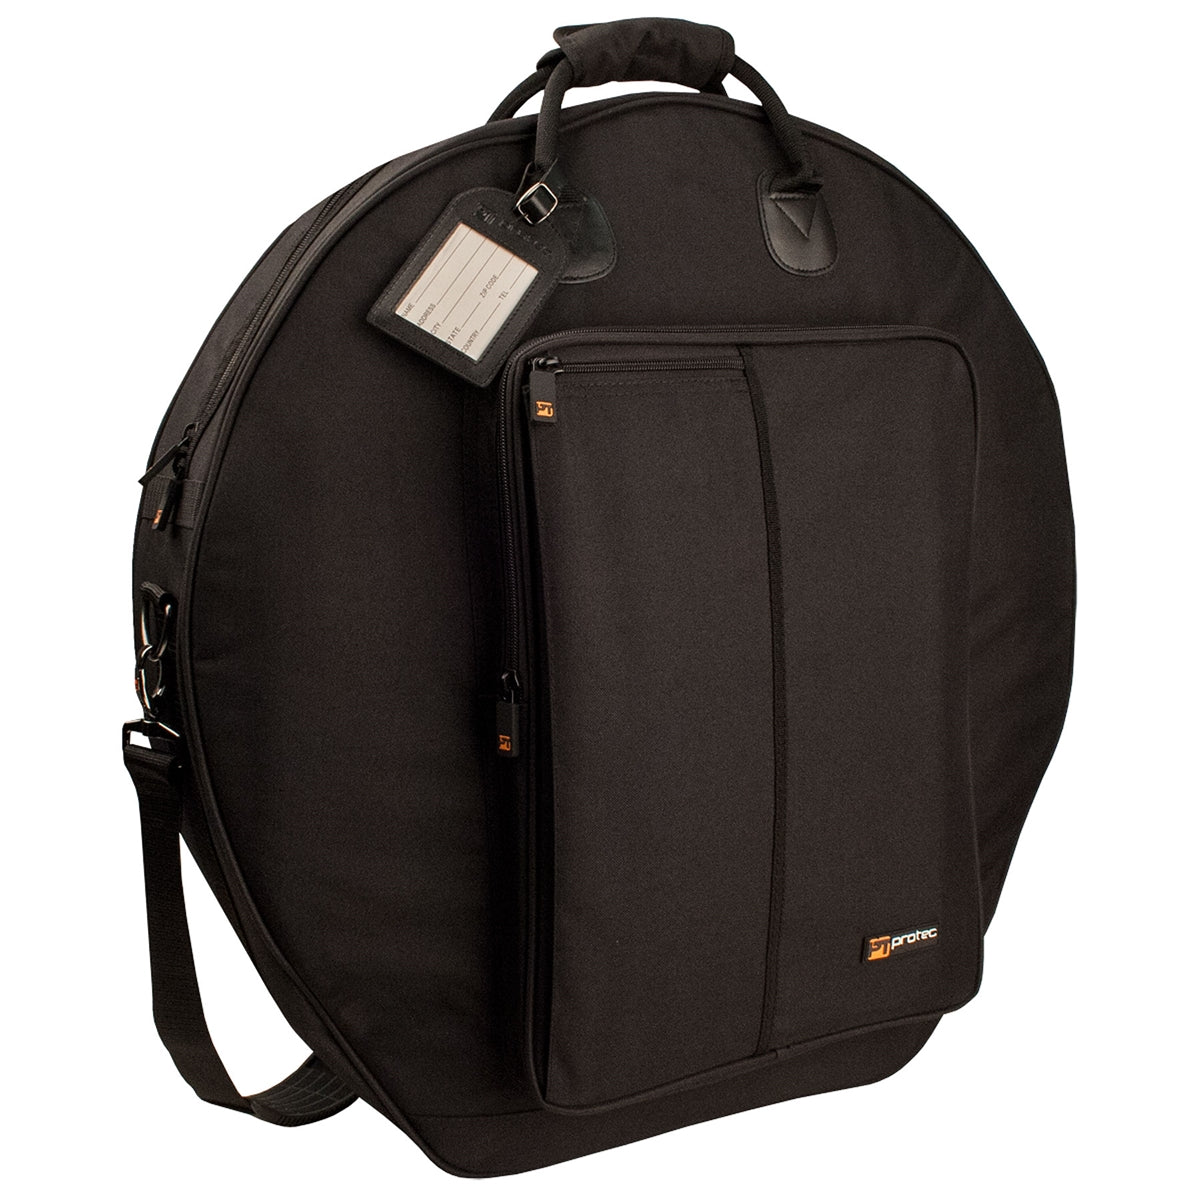 "PROTEC Deluxe 24"" 6-Pack Cymbal Bag"